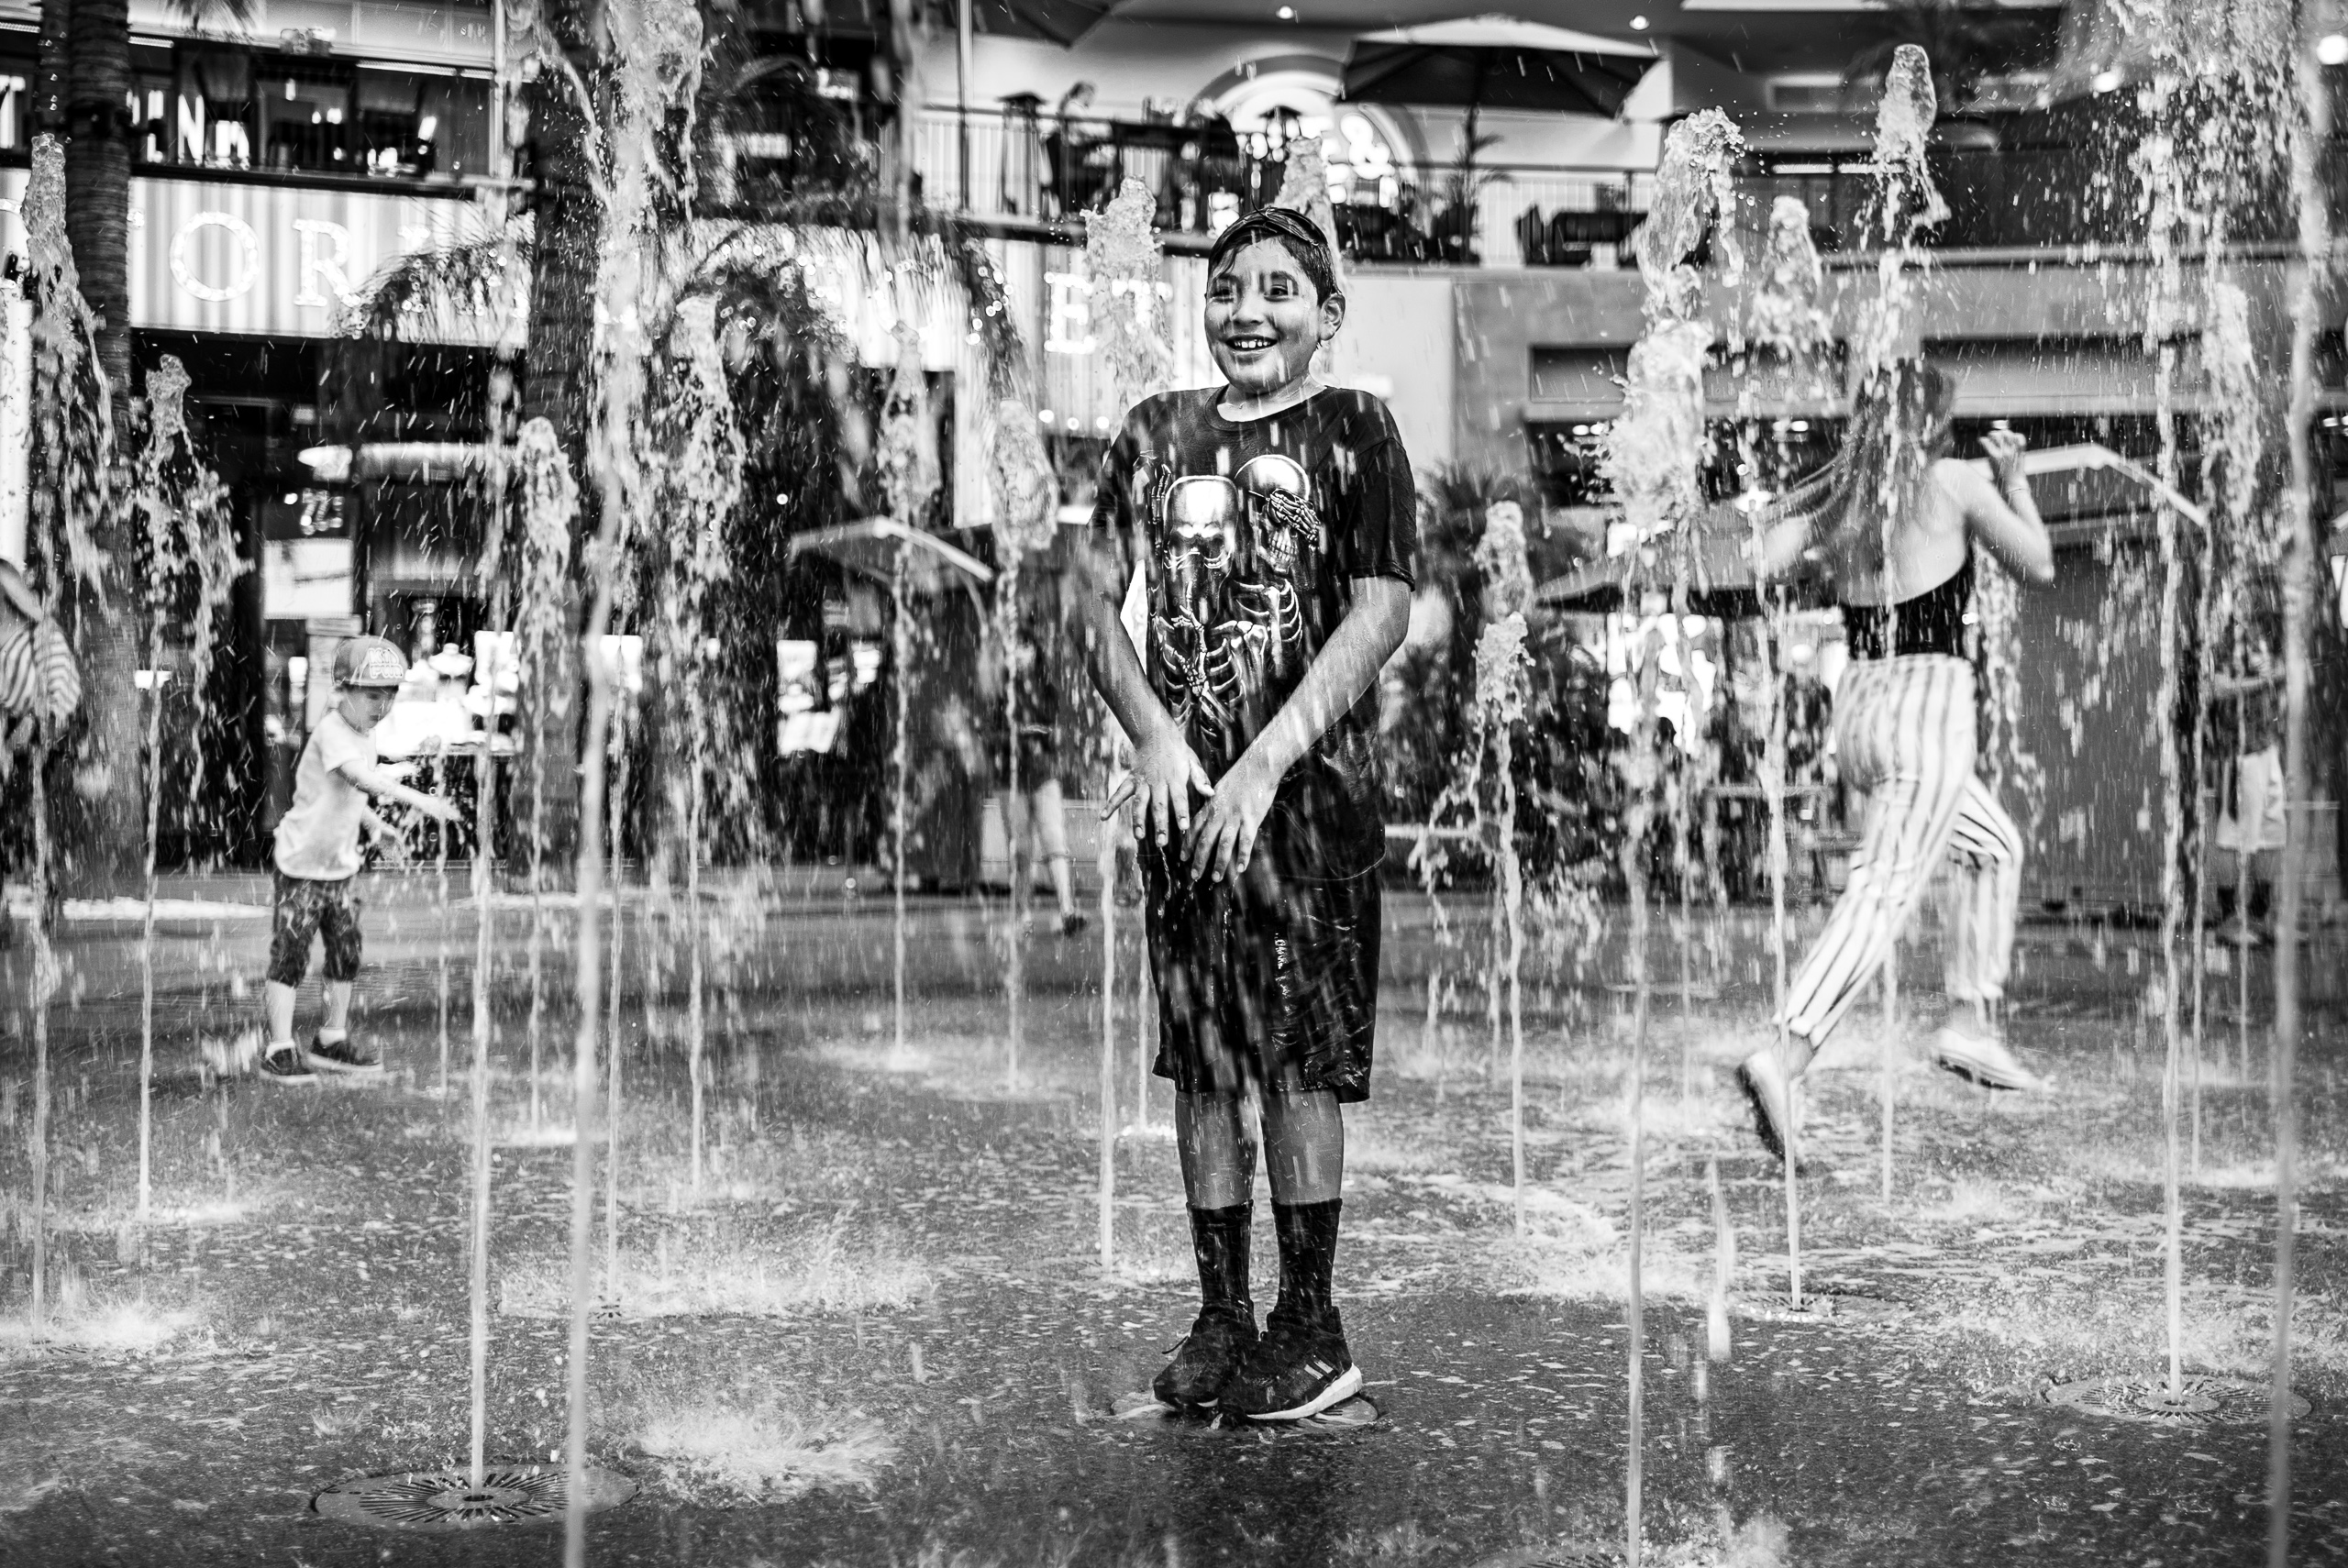 a boy stands in the center of the fountain at Hollywood & Highland and soaks up the cool water on a hot summer night. Meanwhile, behind him, a woman in striped pants makes a fast dash through the fountain, trying to pass through without getting soaked.